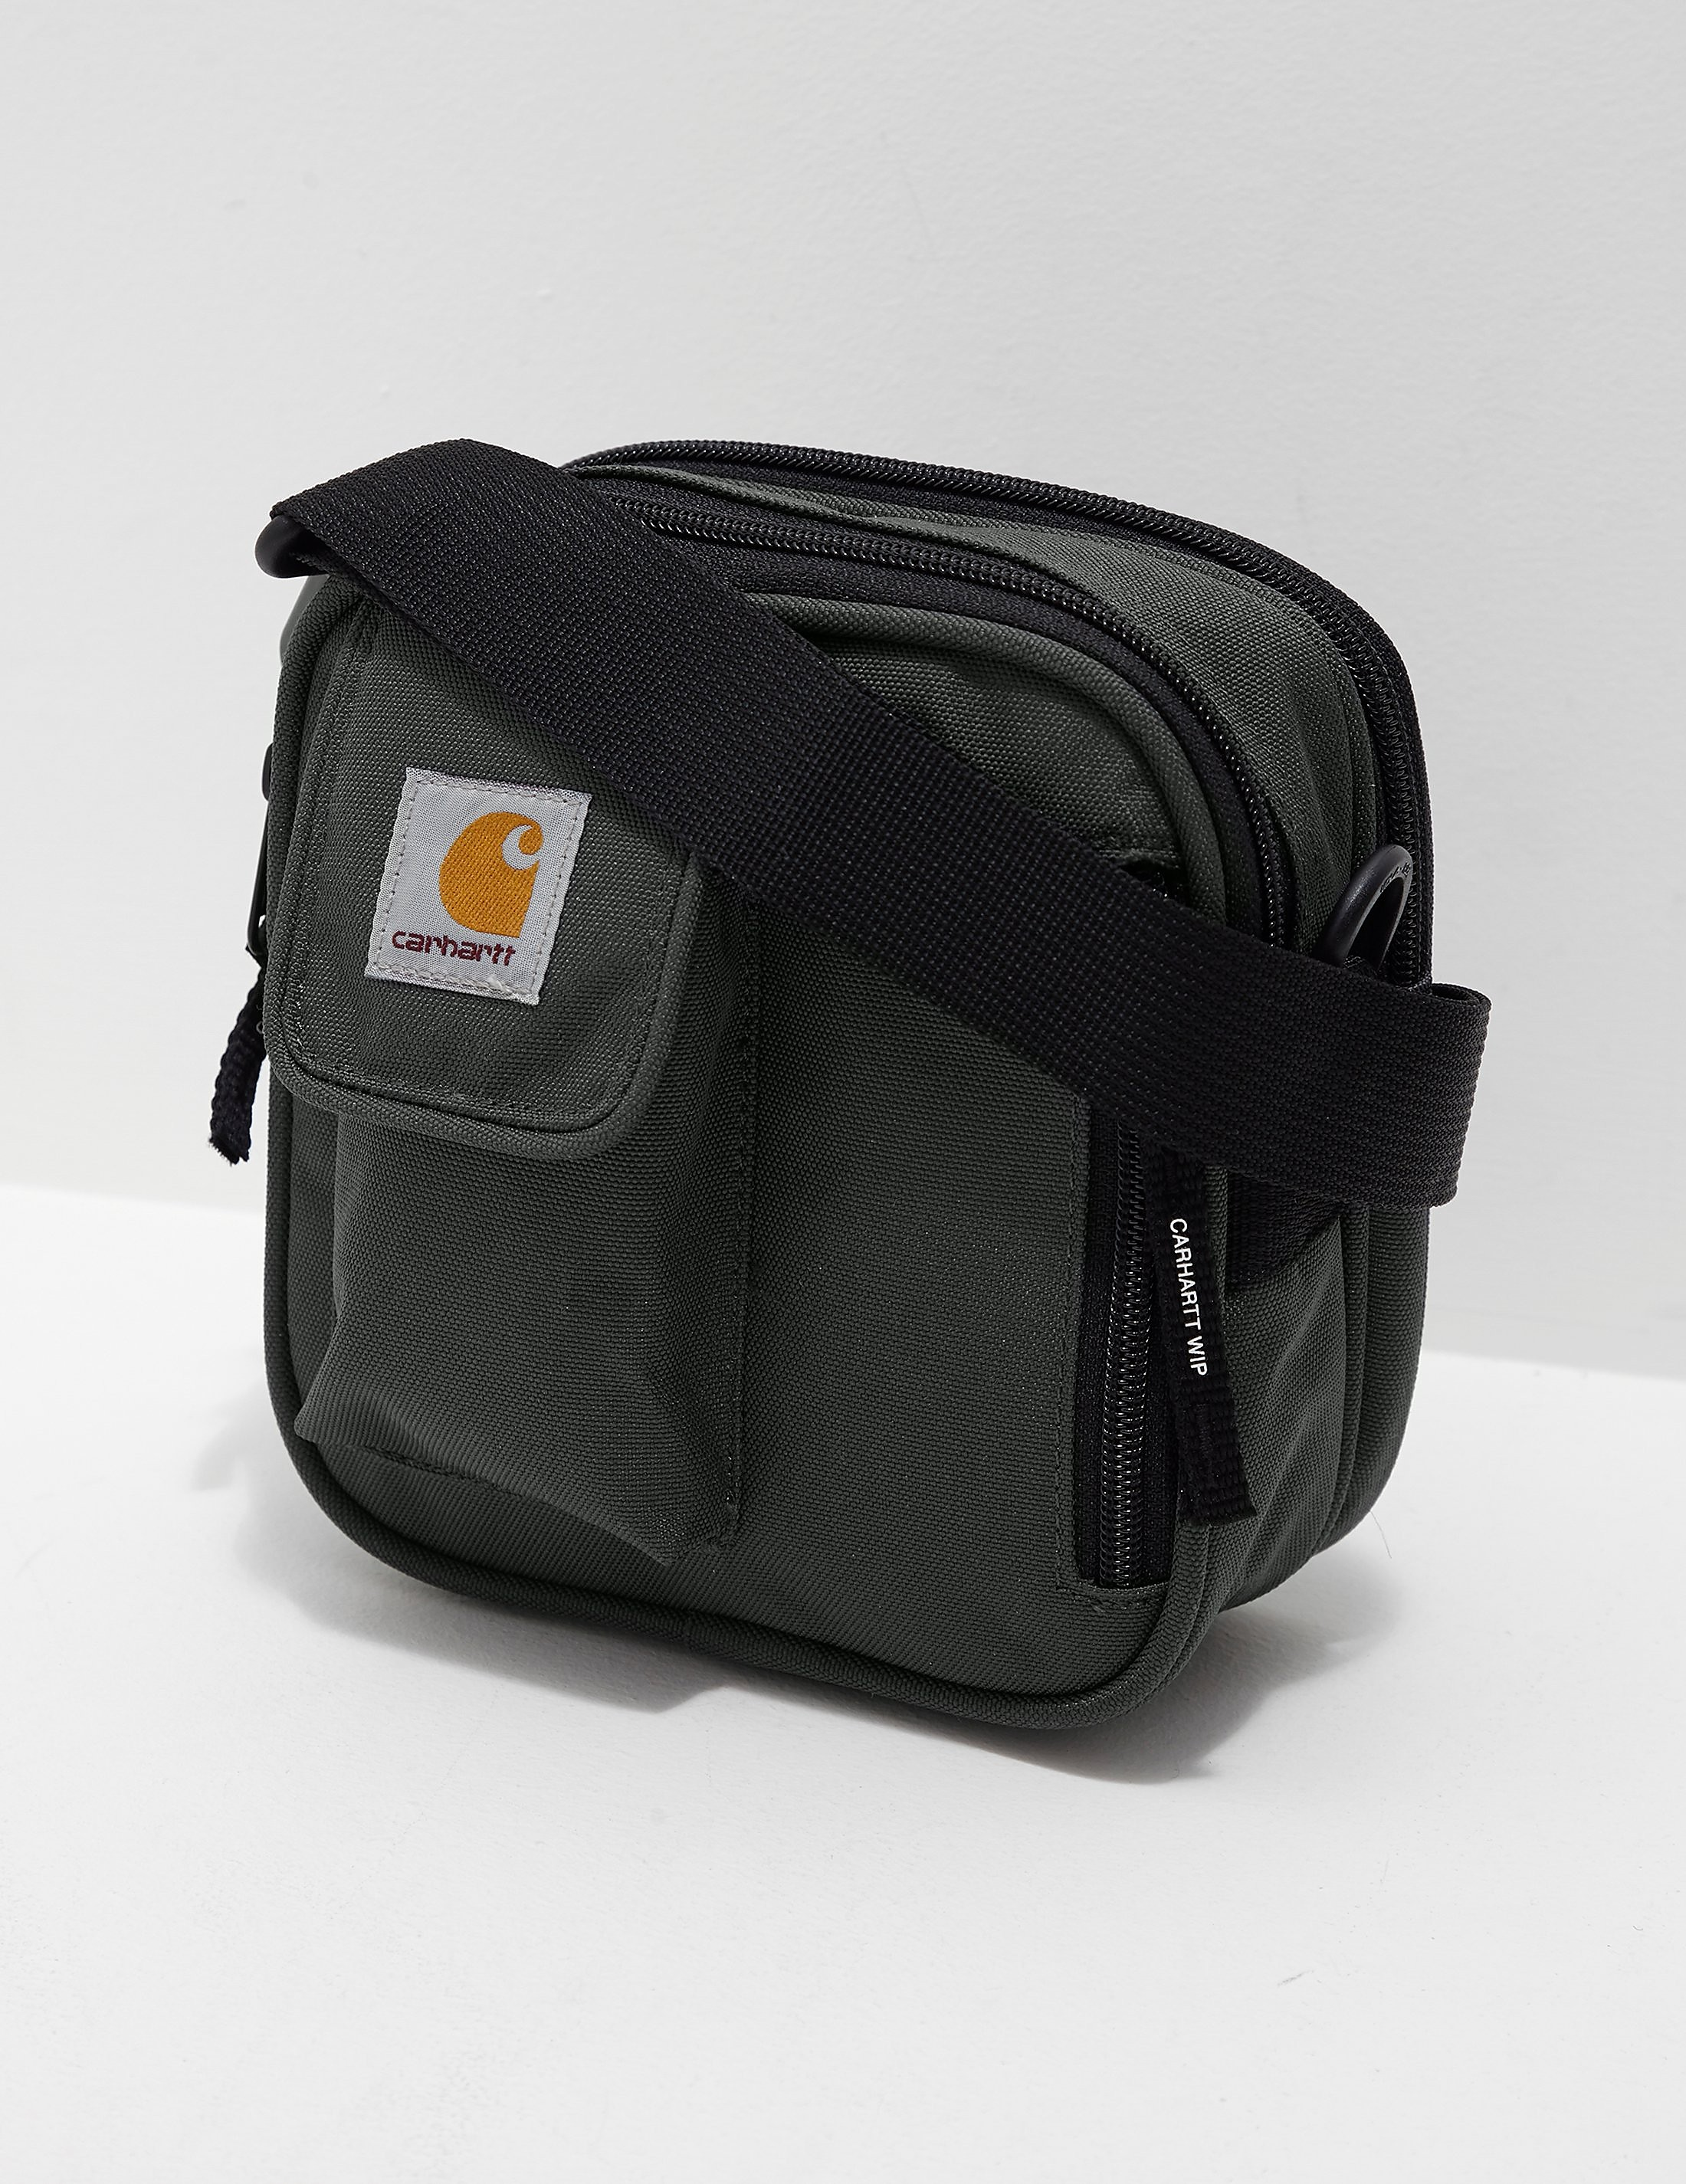 Carhartt WIP Essentials Pouch Bag